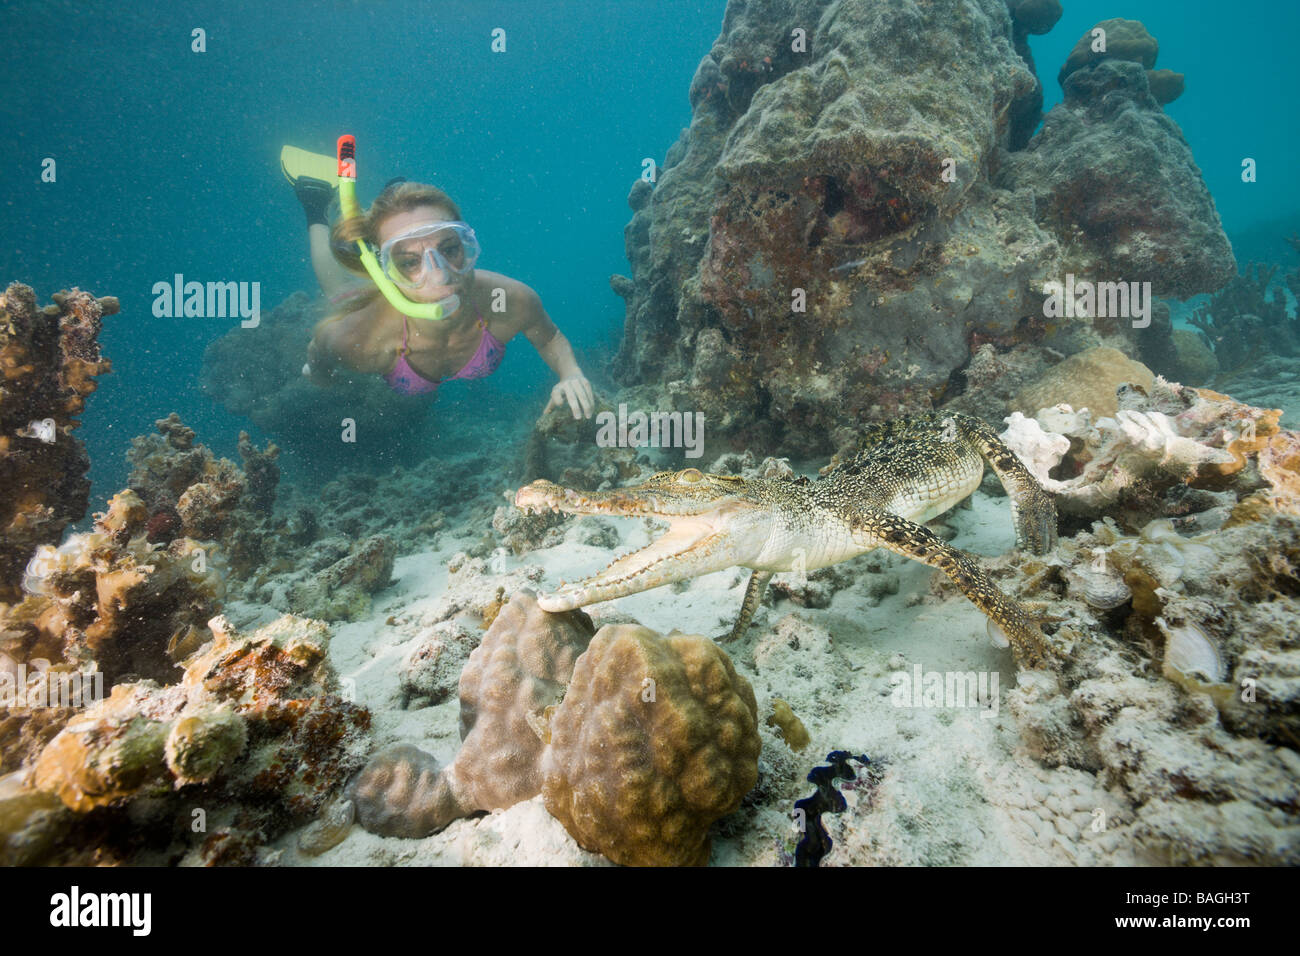 Skin Diver meets Saltwater Crocodile Crocodylus porosus Micronesia Palau Stock Photo